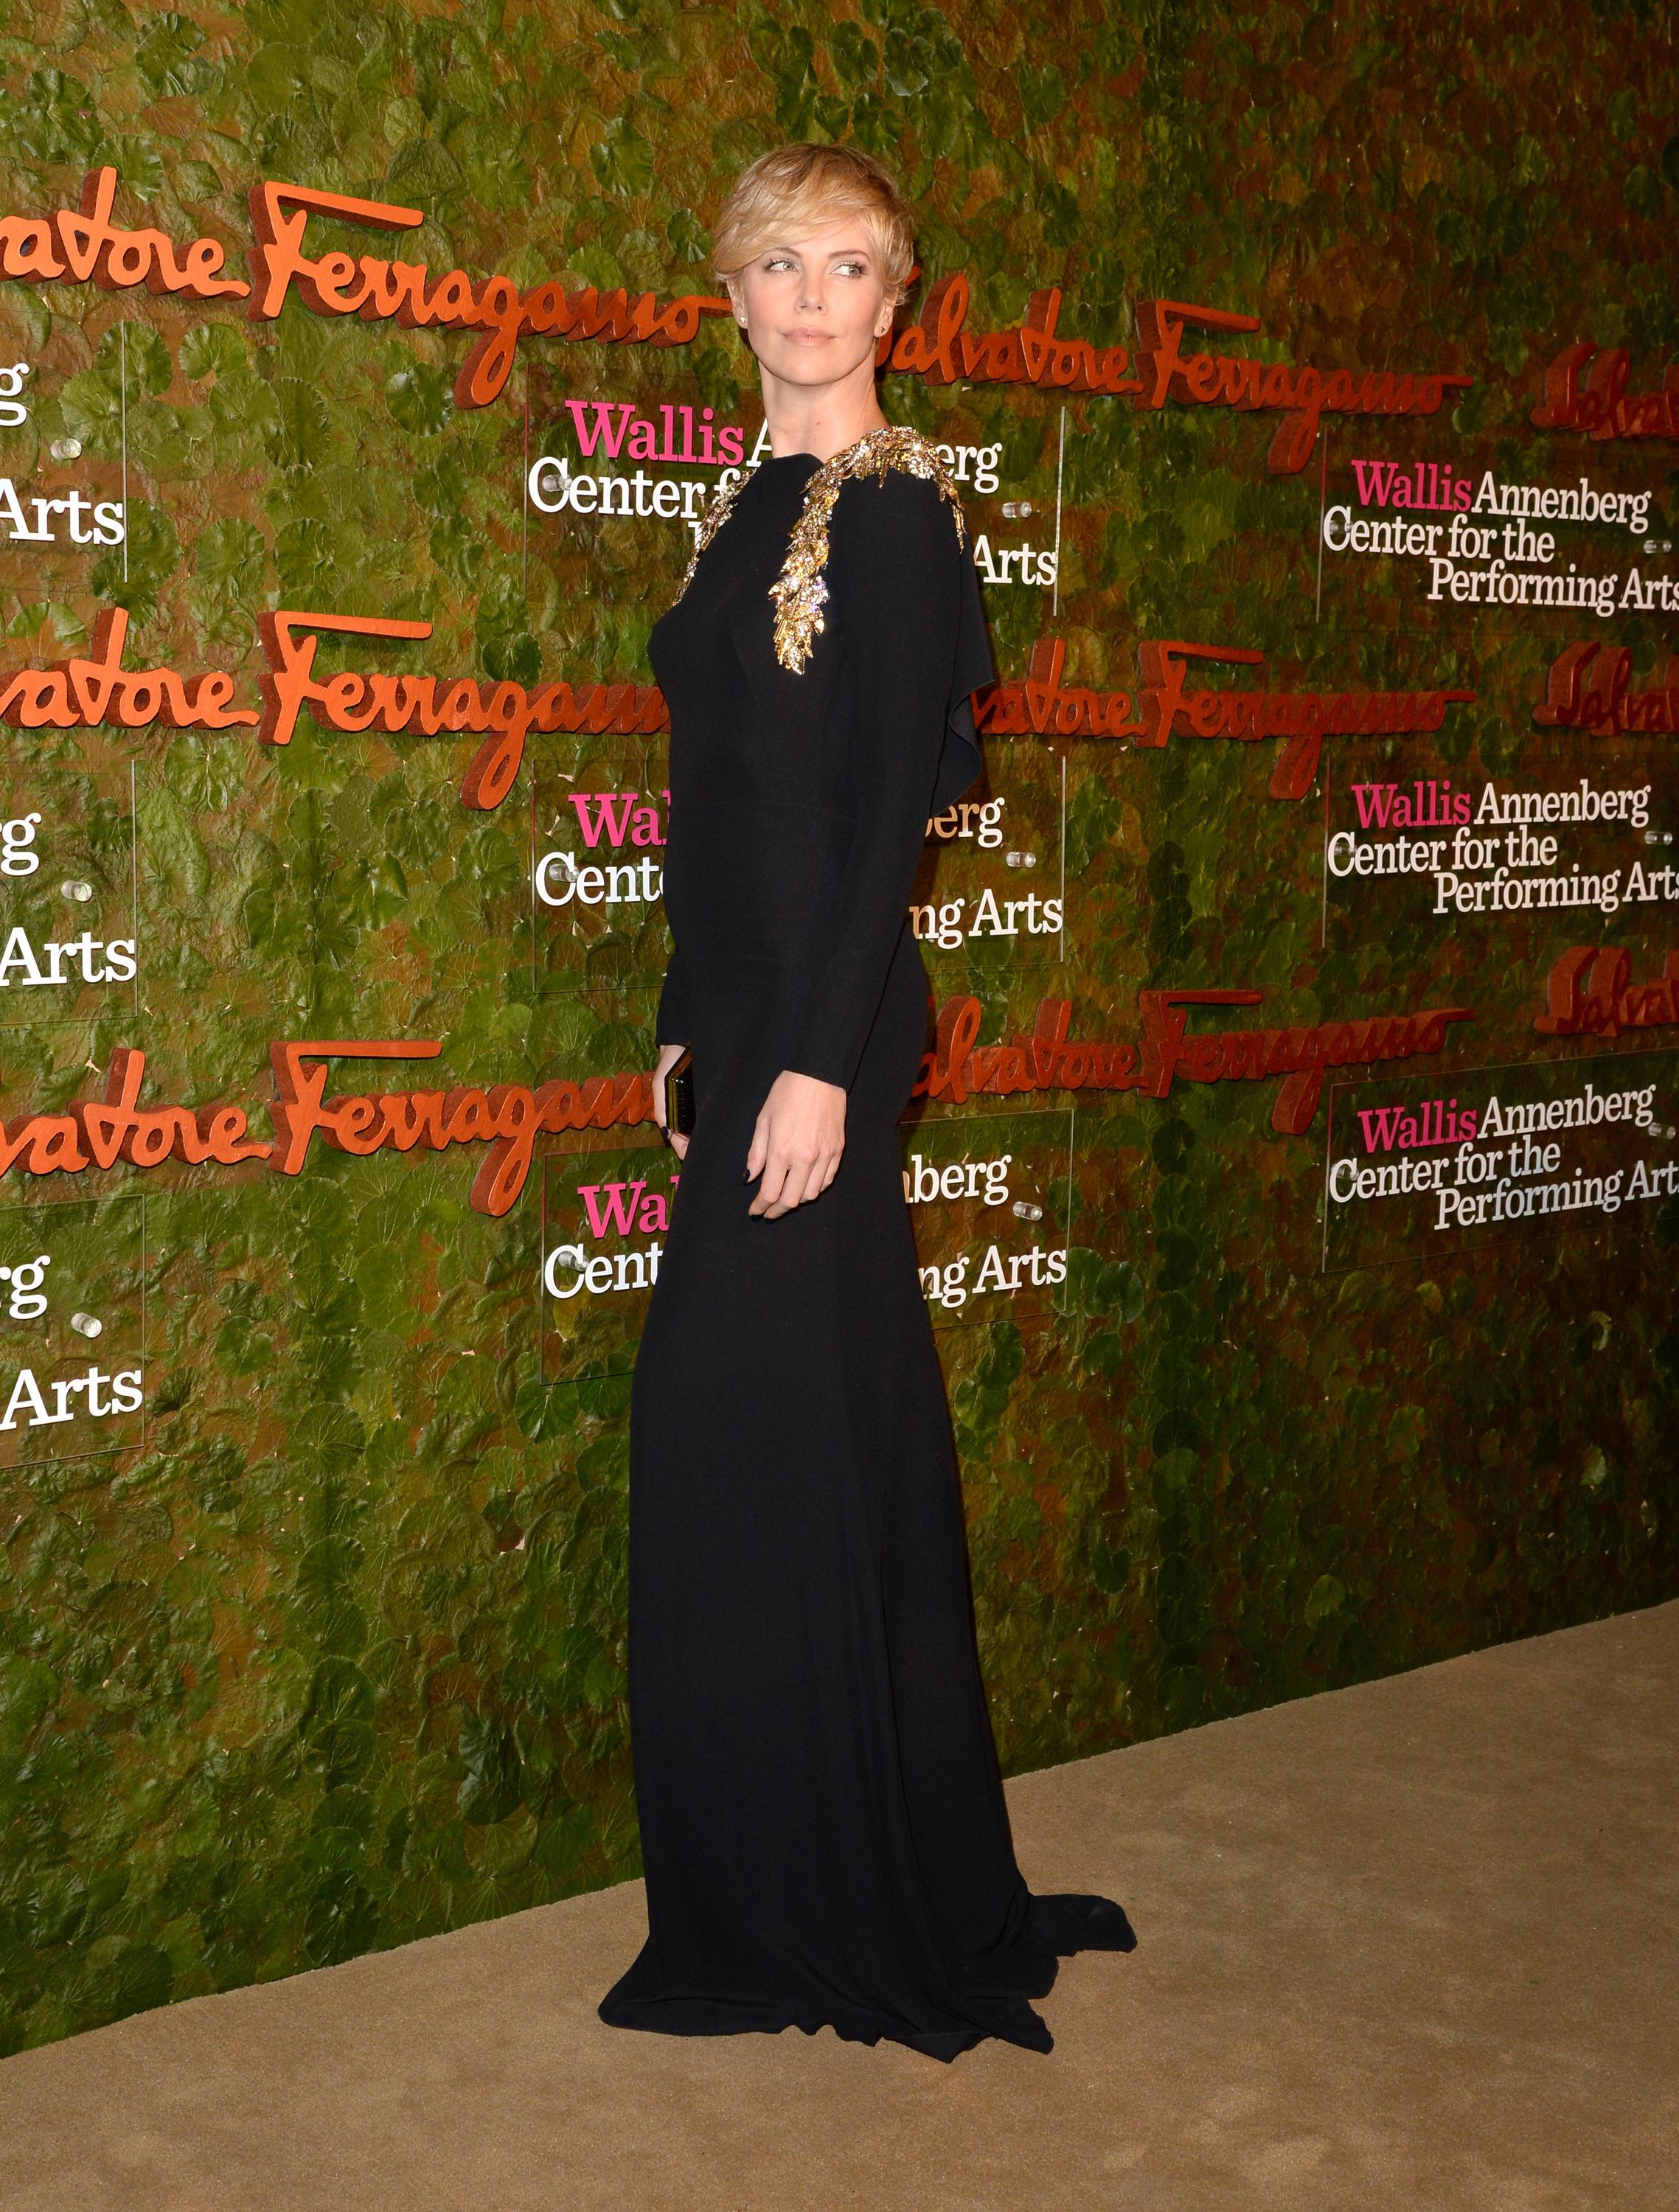 Wallis Annenberg Center For The Performing Arts Inaugural Gala Presented By Salvatore Ferragamo – Red Carpet